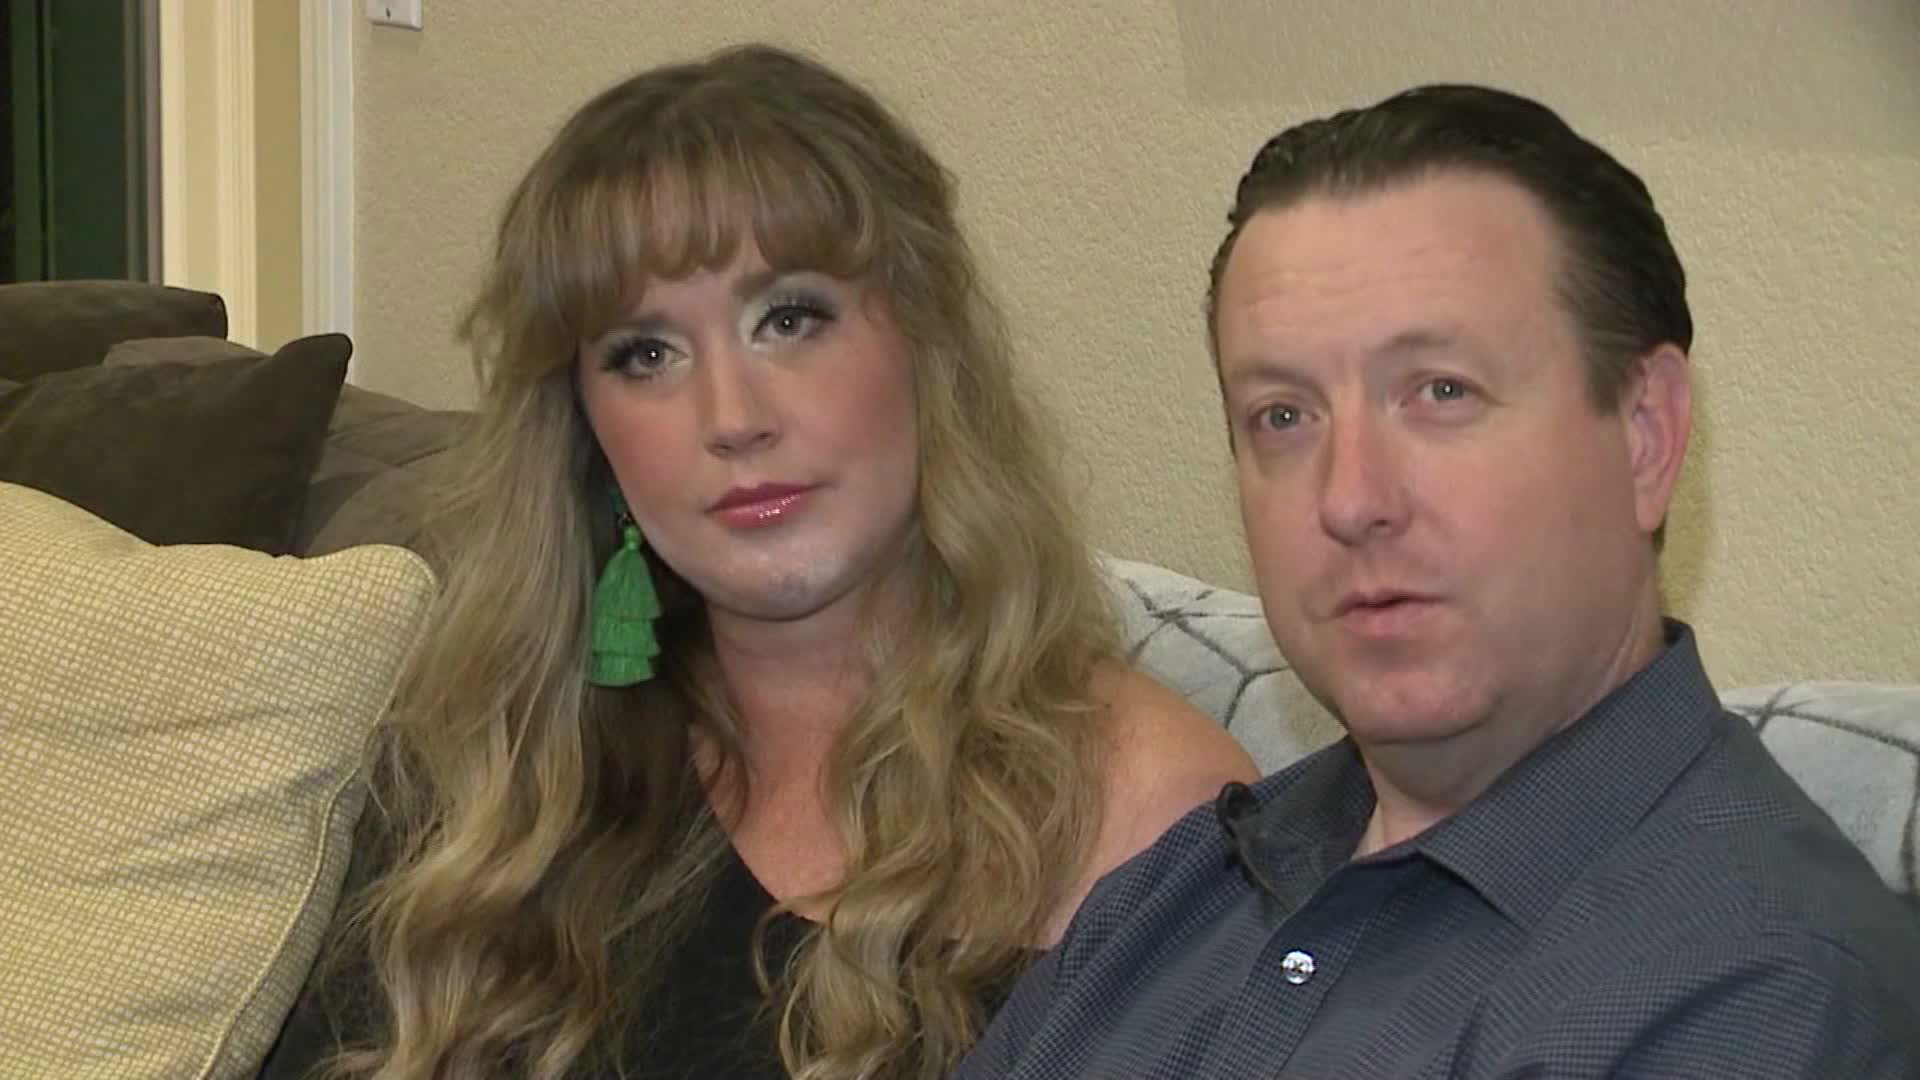 They matched on a dating site and got married. He needed a kidney, and they matched again